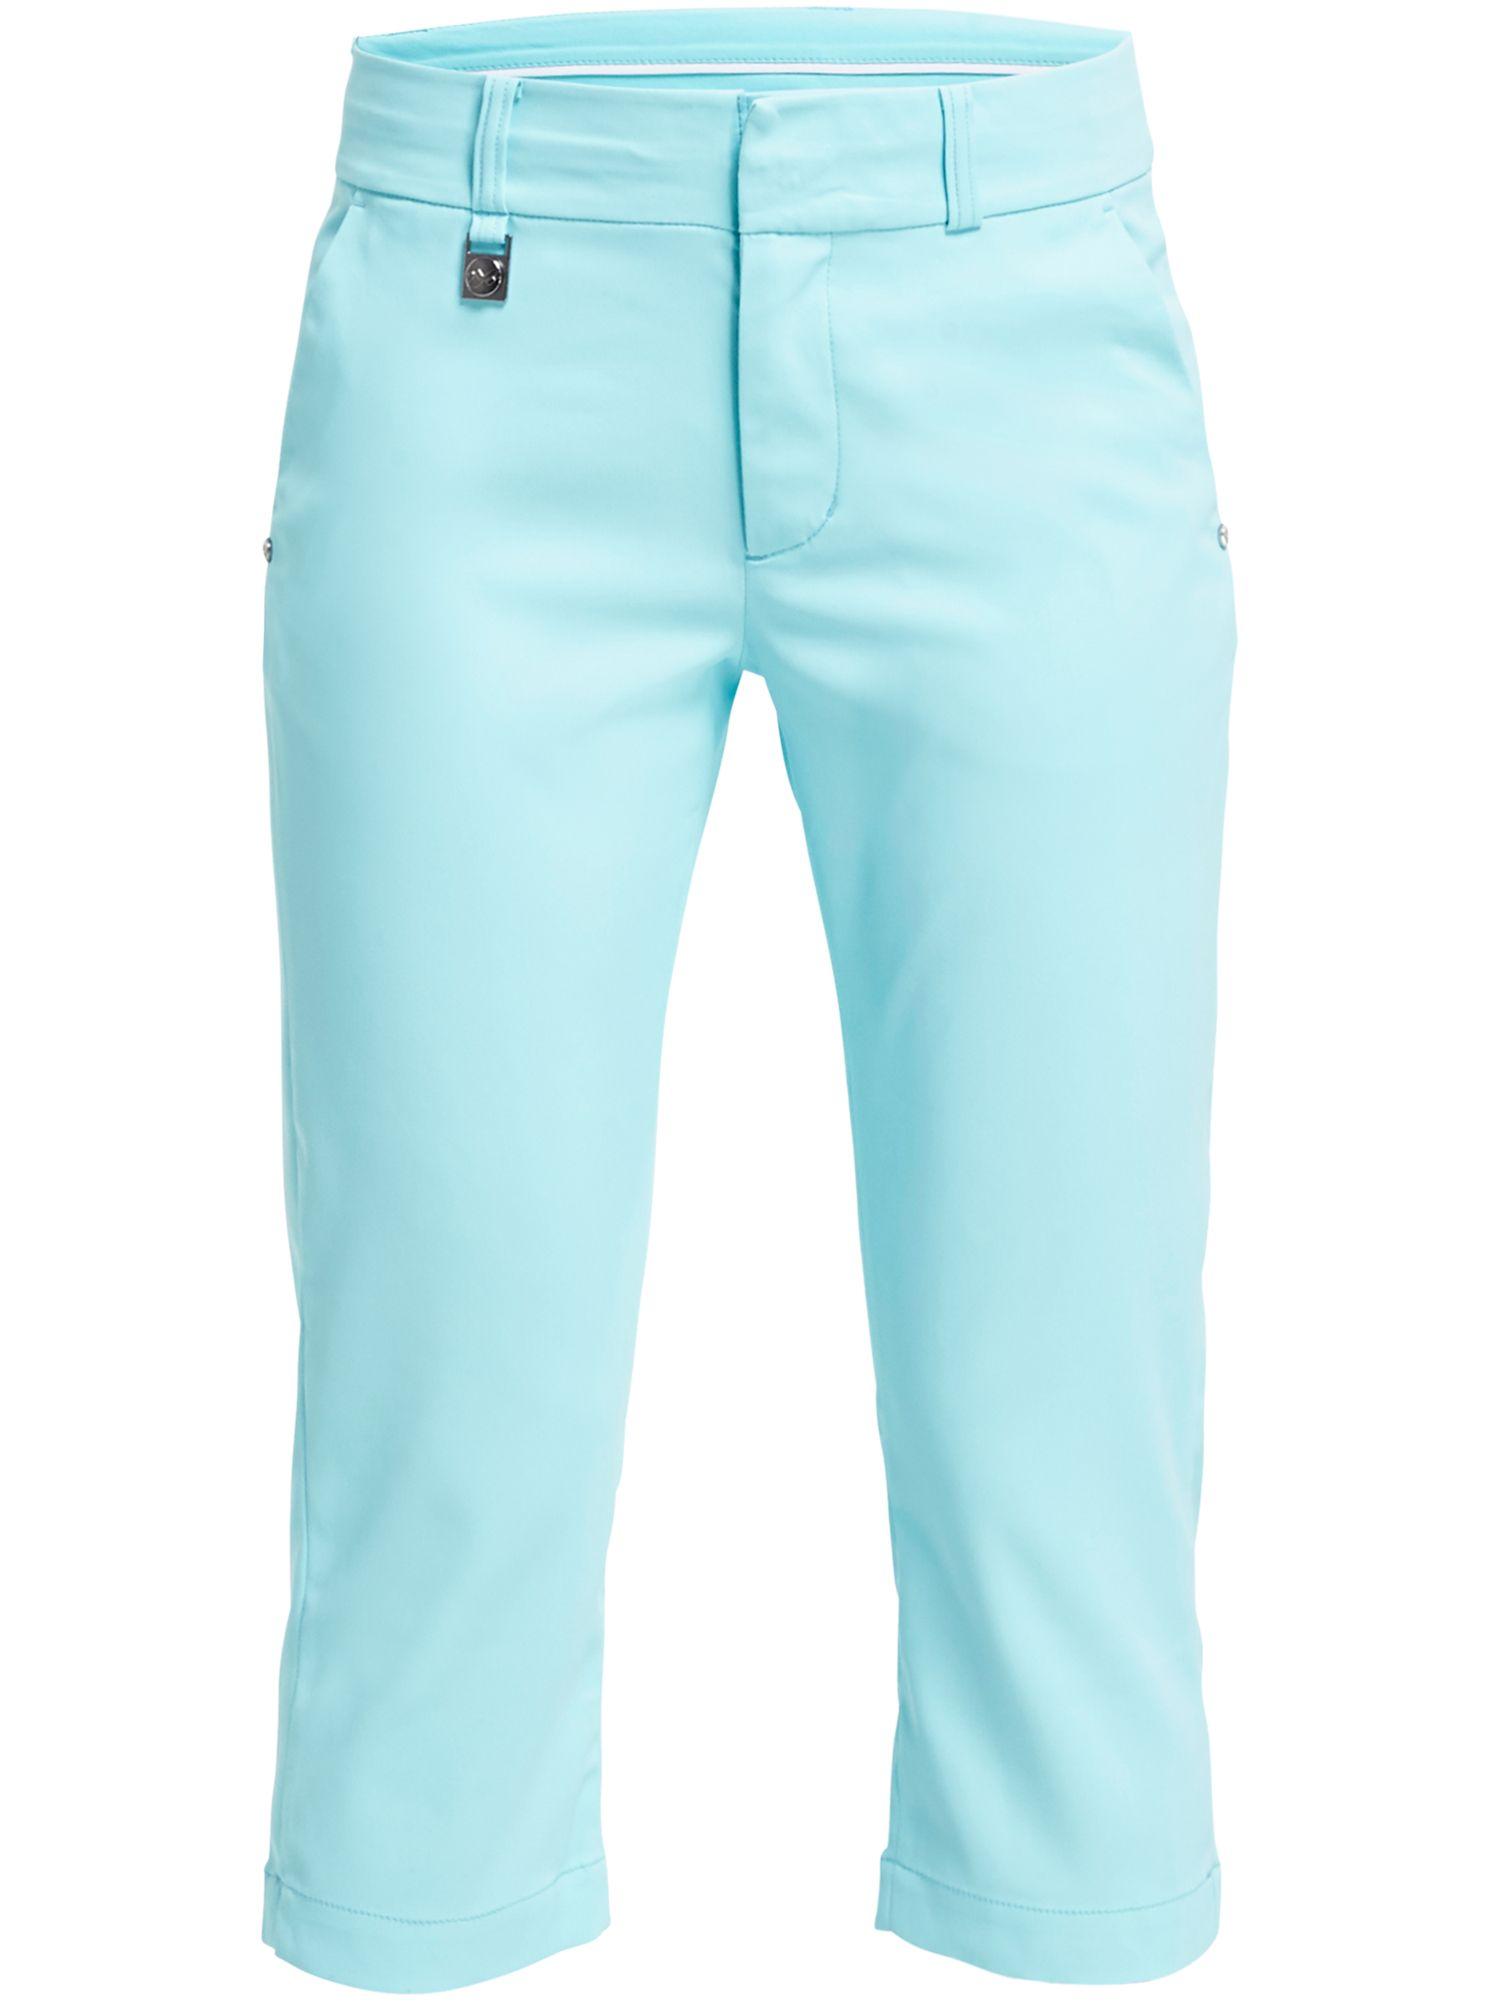 Rohnisch Flow Capri Trousers, Blue